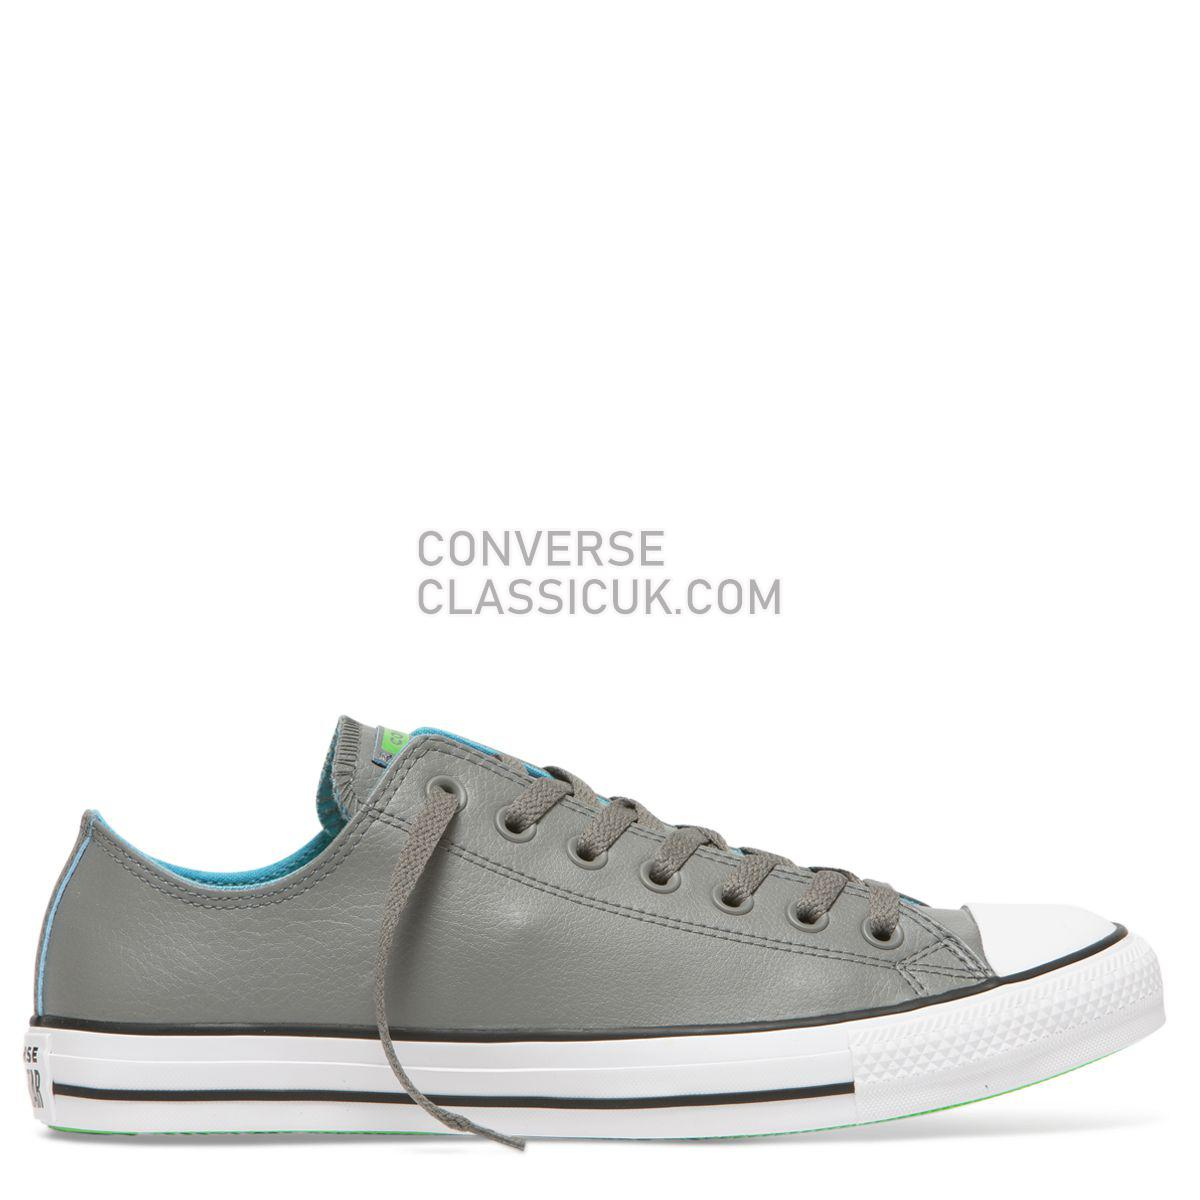 Converse Chuck Taylor All Star SL Low Top Mason Mens Womens Unisex 165666 Mason/Gnarly Blue/White Shoes